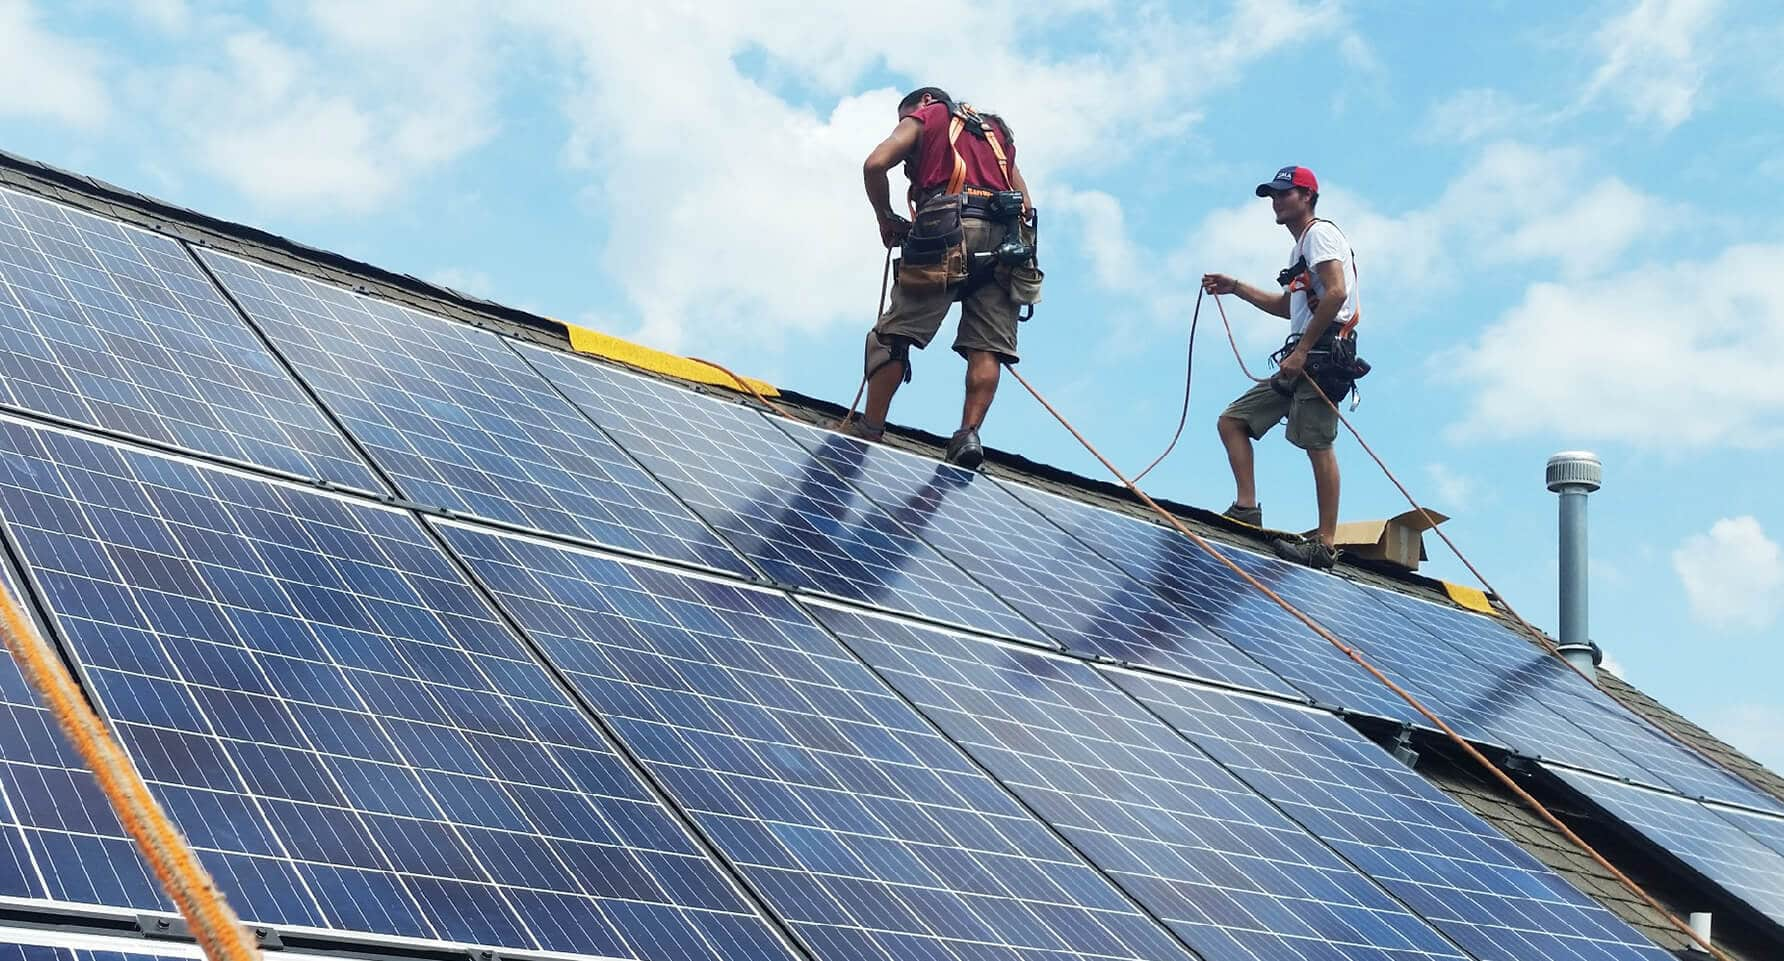 Solar Installers on a Rooftop Installation